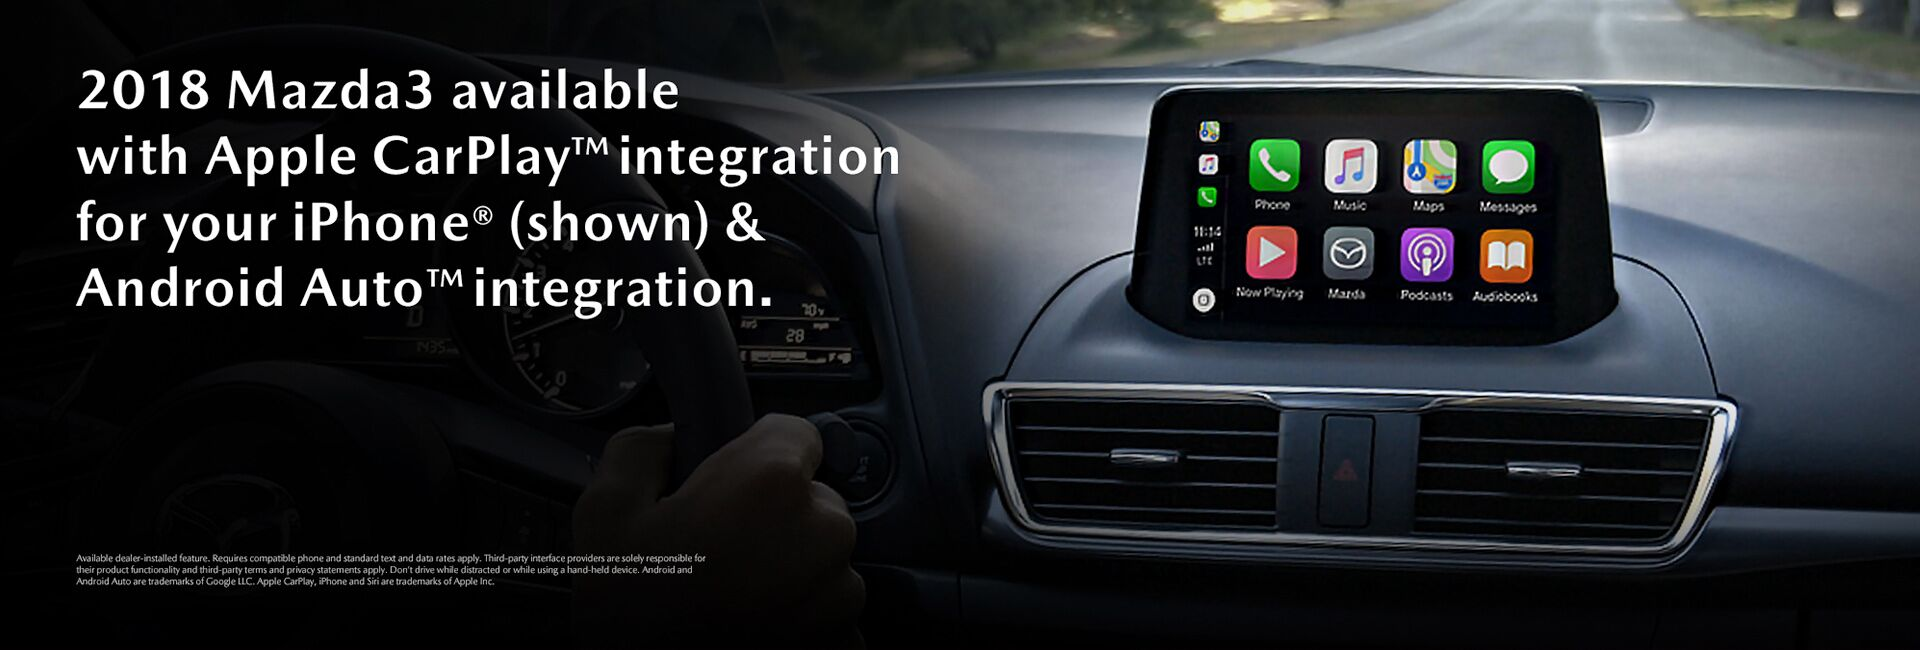 2018 Mazda3 Apple Carplay and Android Auto Integration